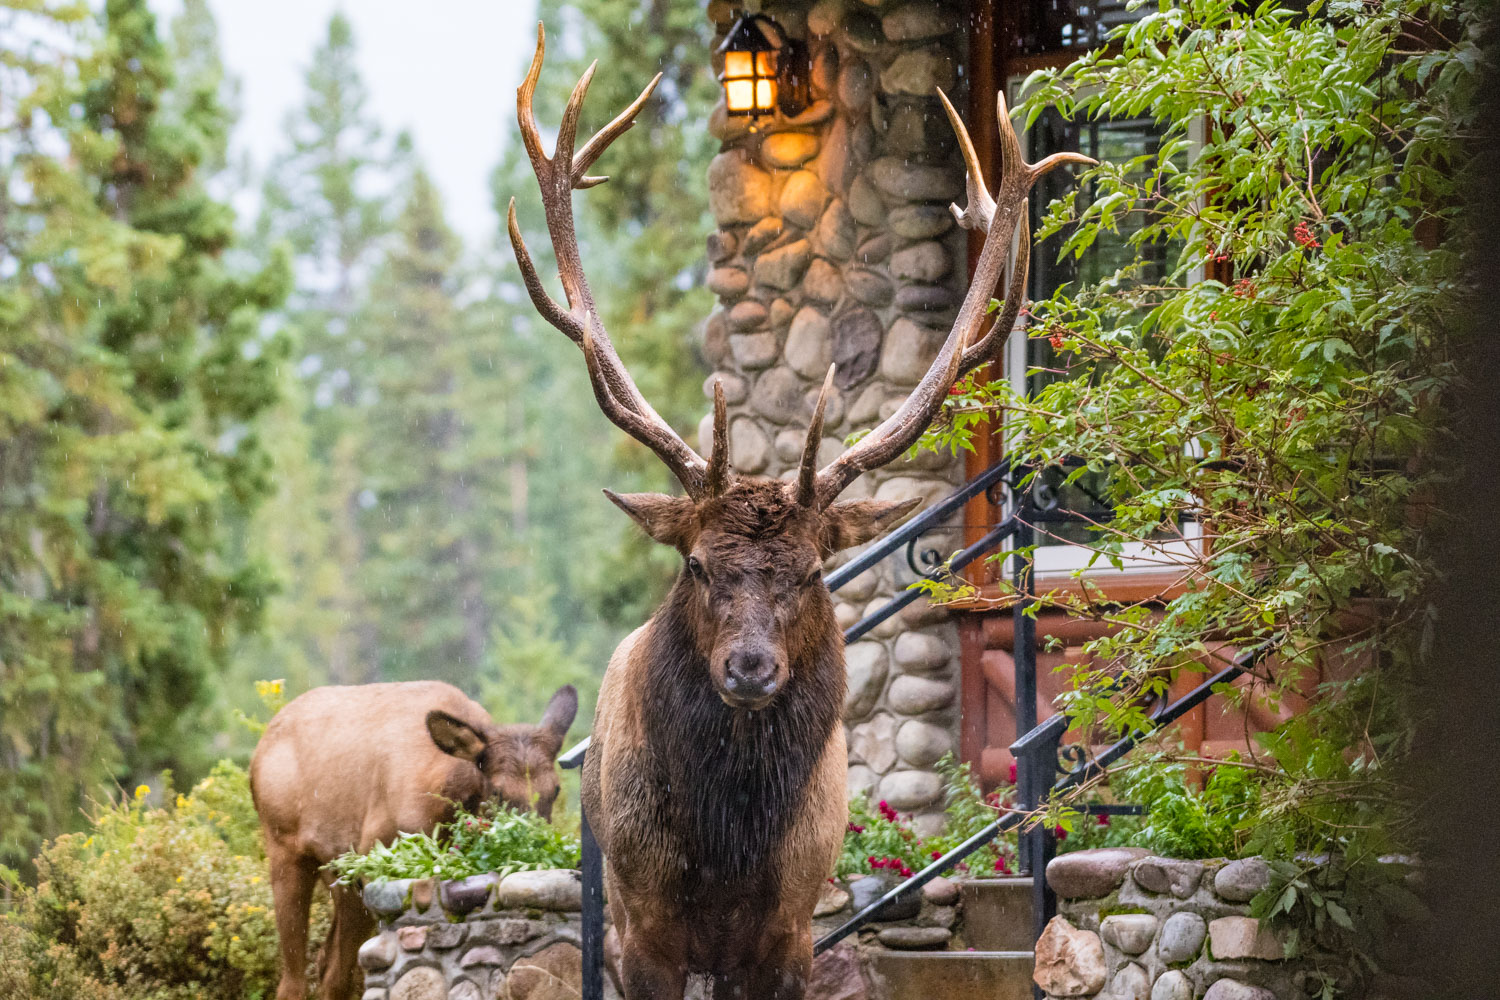 Jasper was full of elk, they woke us up at 2:00am in the morning, shouting through our bedroom window.